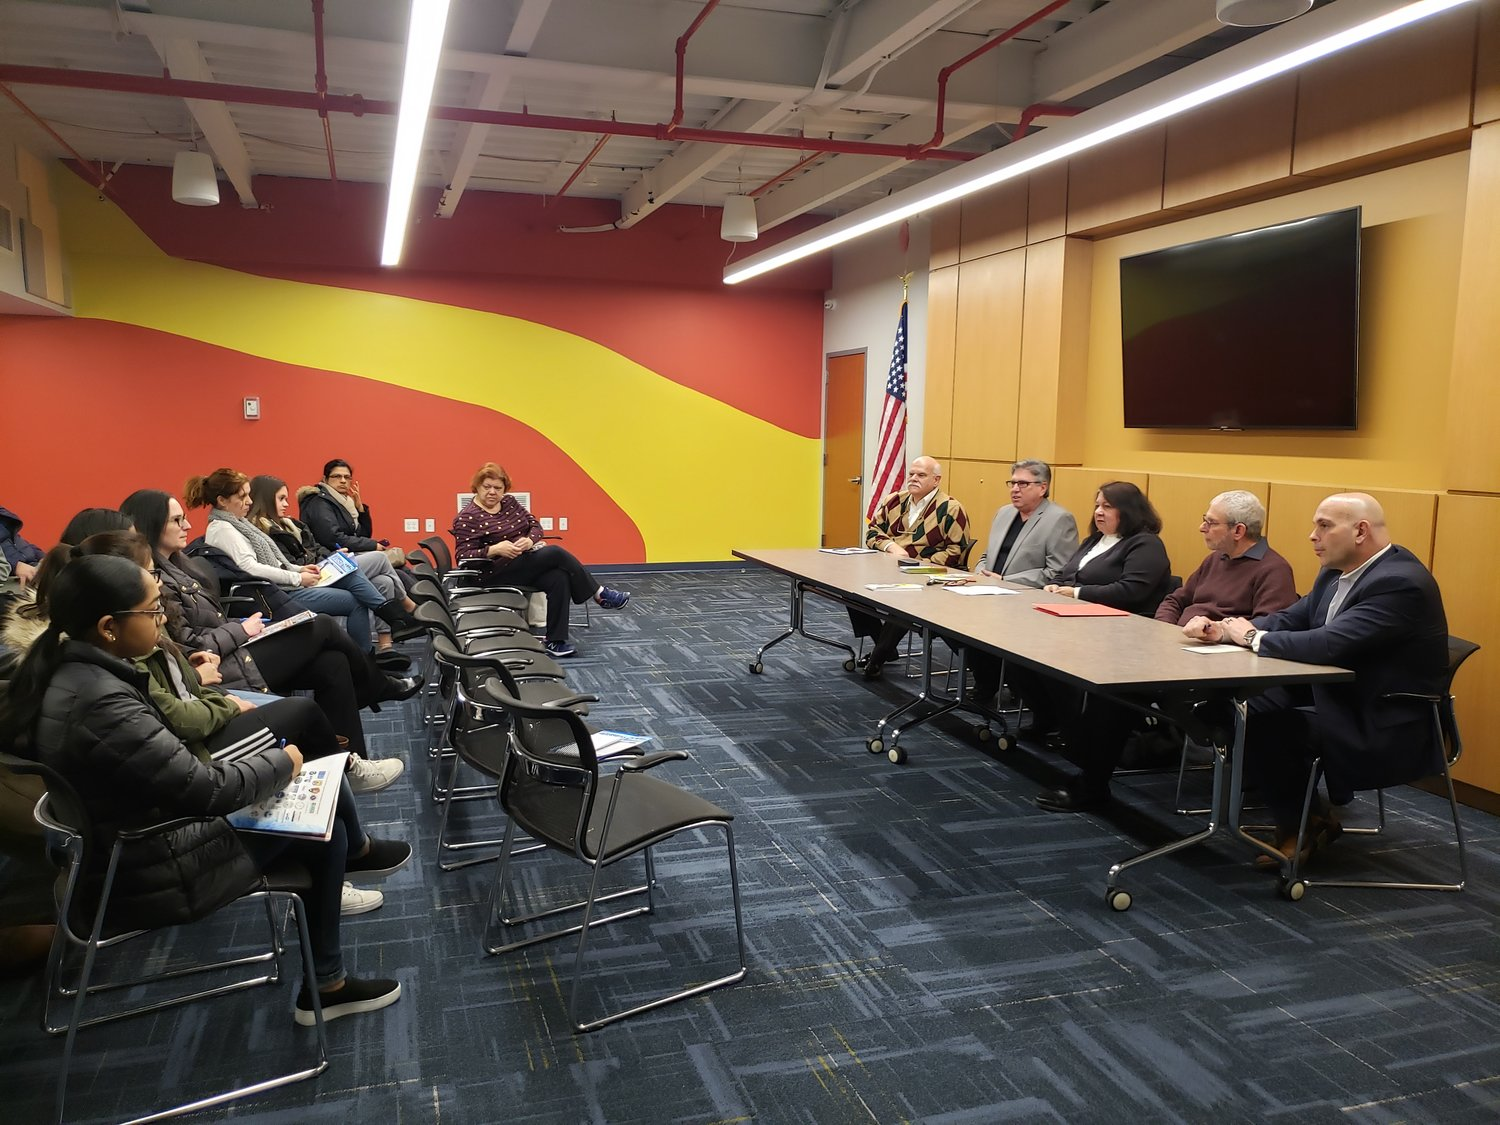 Parents and students from the West Hempstead and Sewanhaka school districts attended a discussion of STEM-related jobs at the West Hempstead Library on Feb. 11.